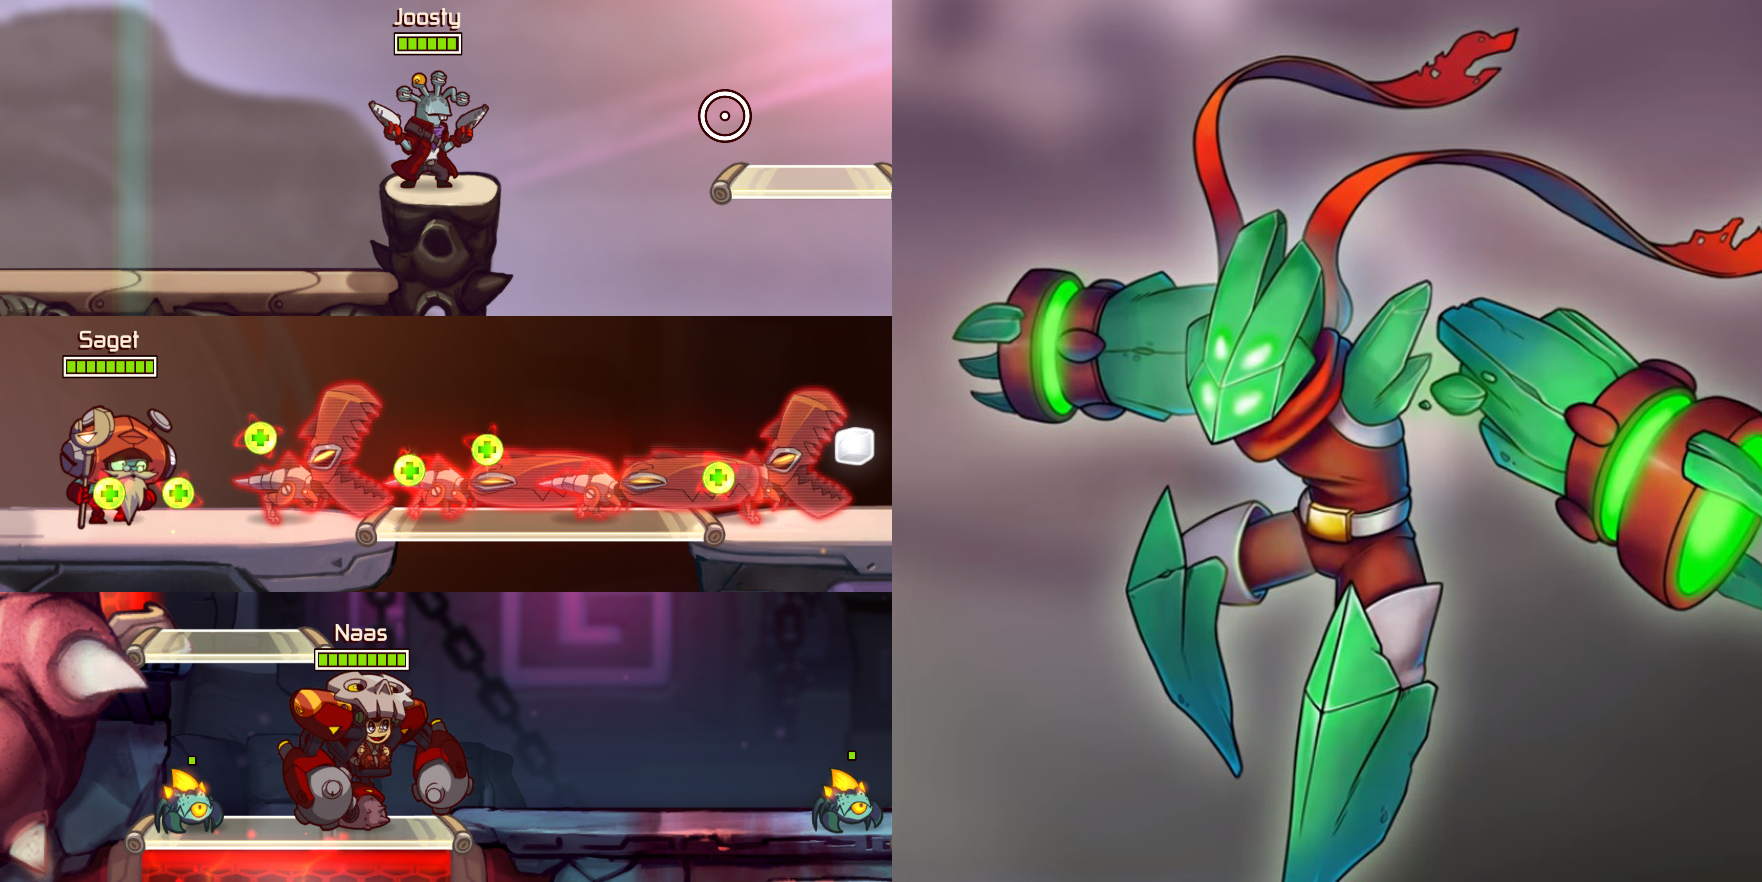 Personajes que llegarán con Awesomenauts Overdrive